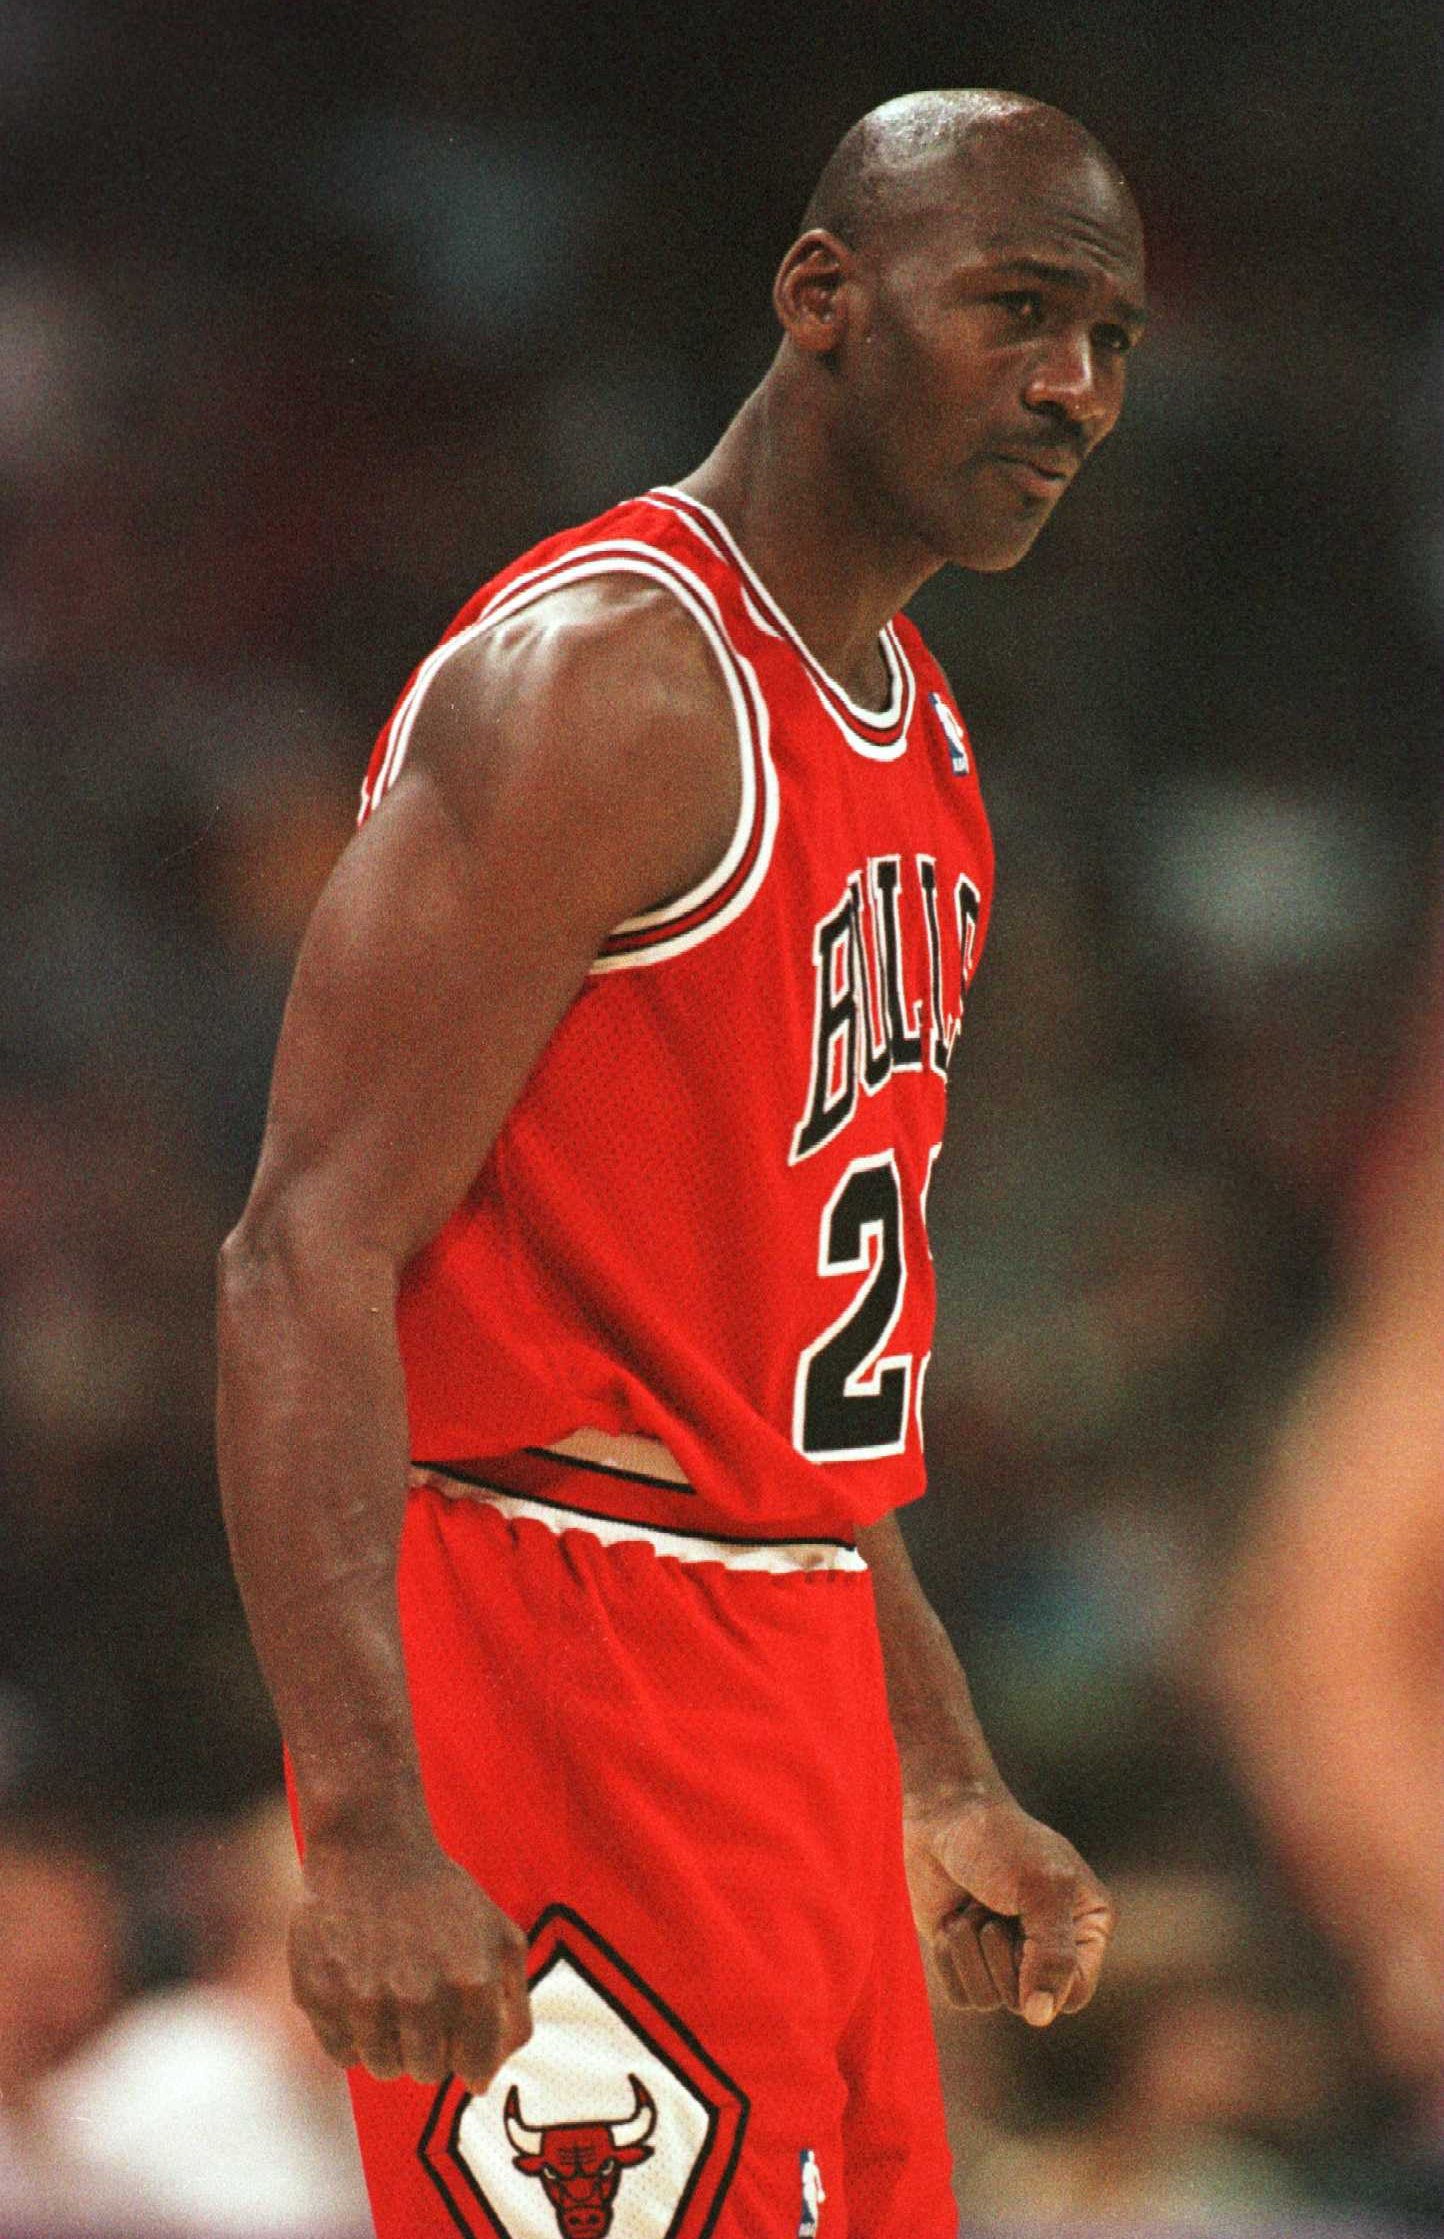 Michael Jordan also punched Will Perdue